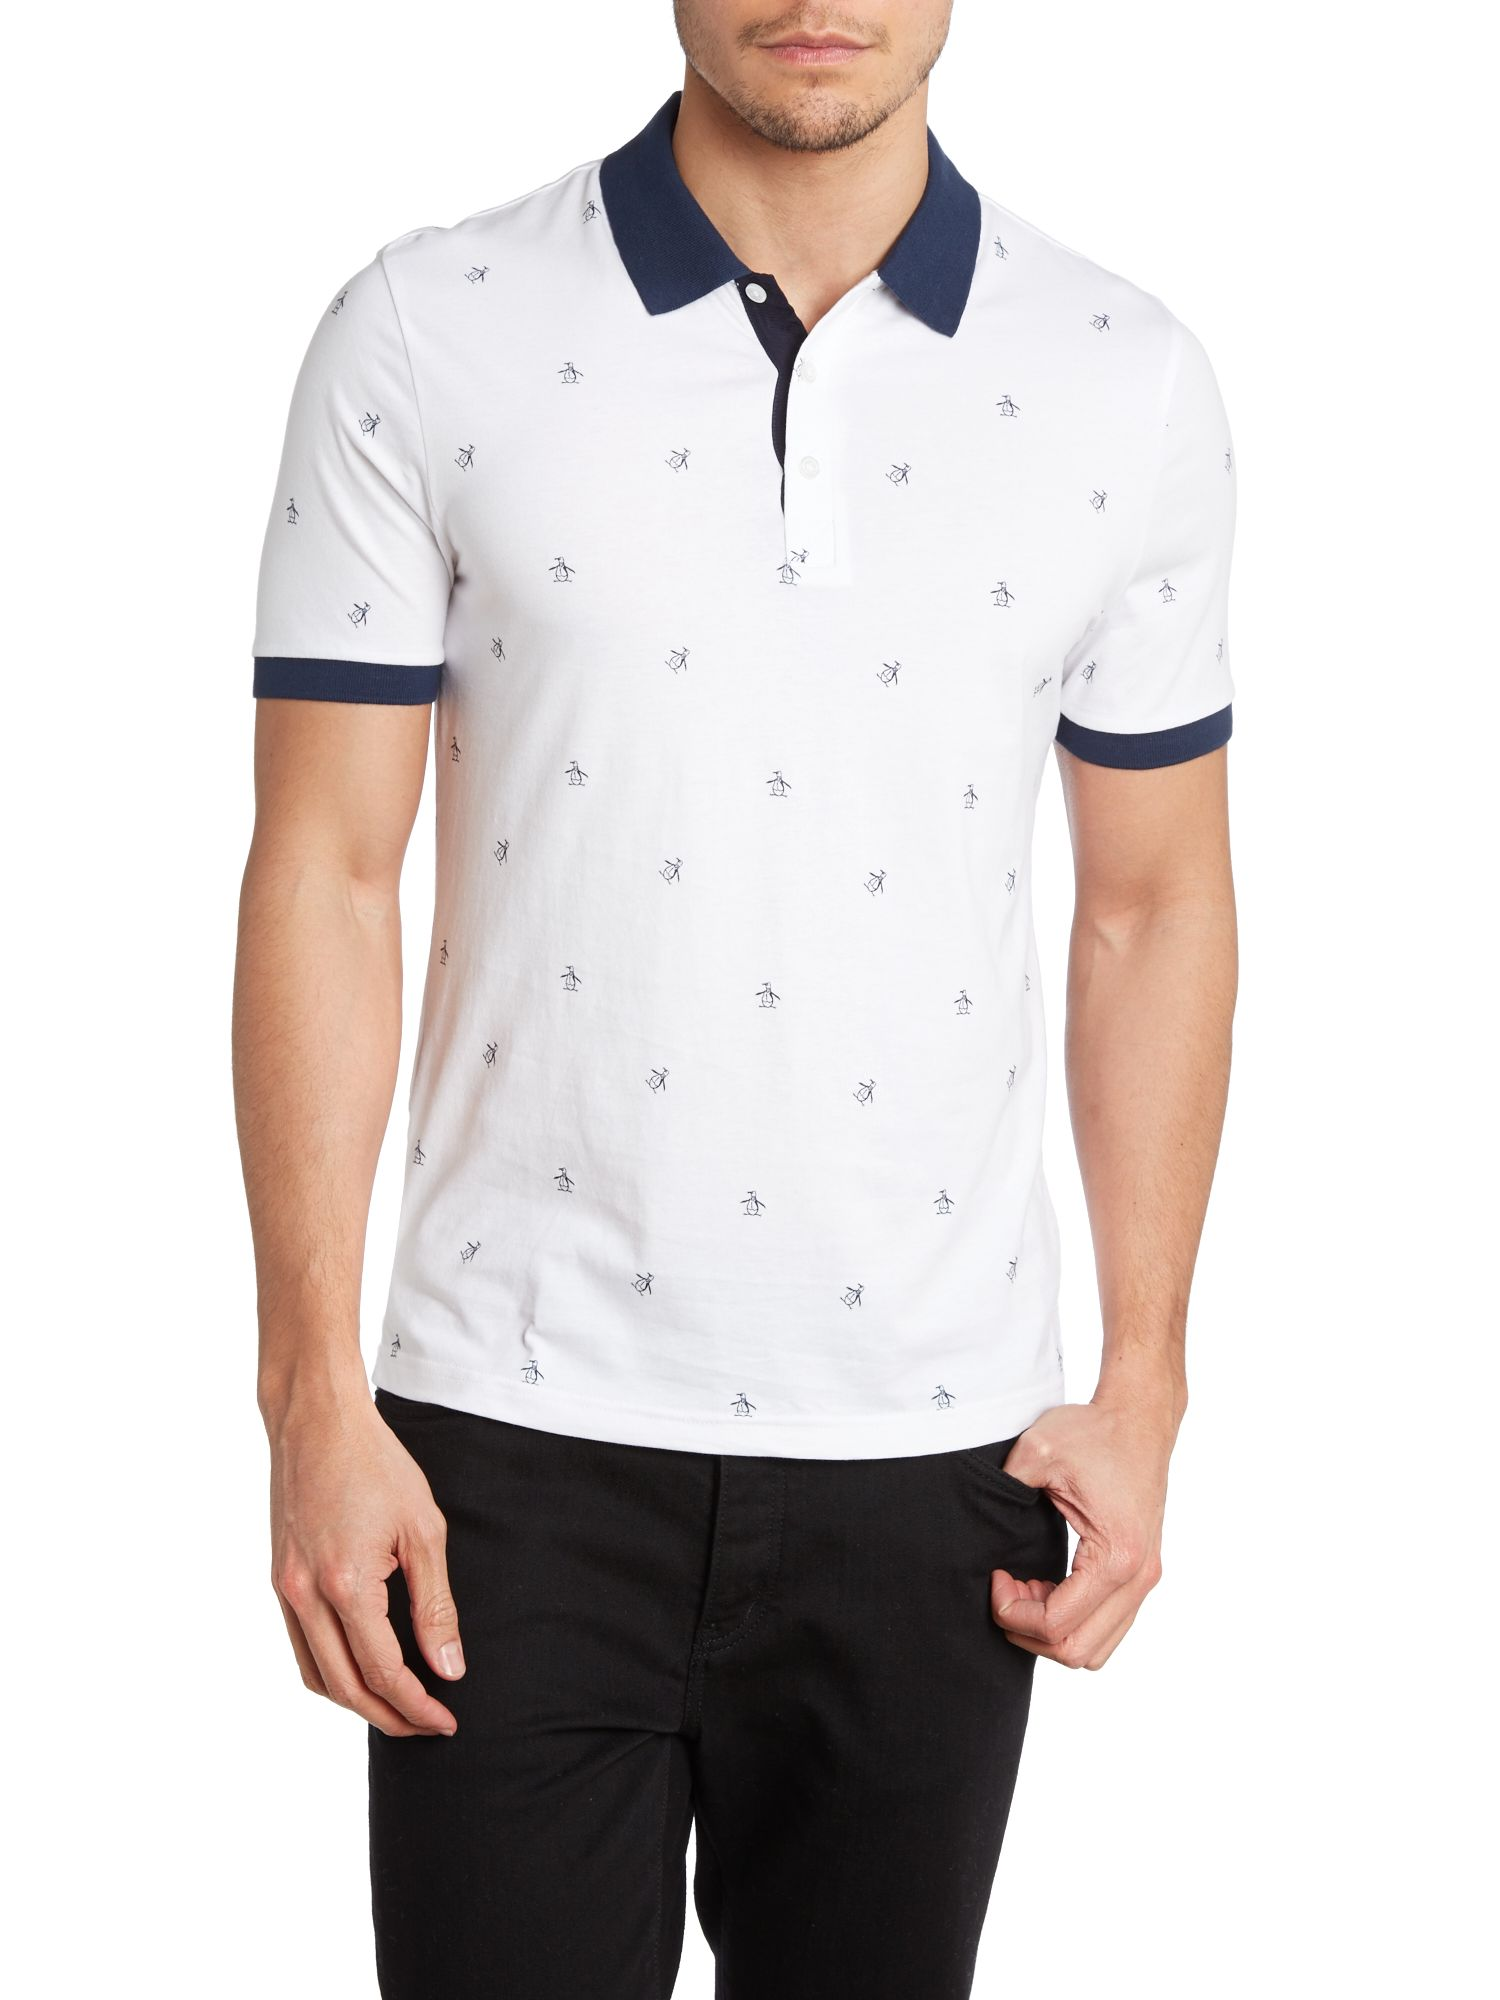 All over enguin print polo